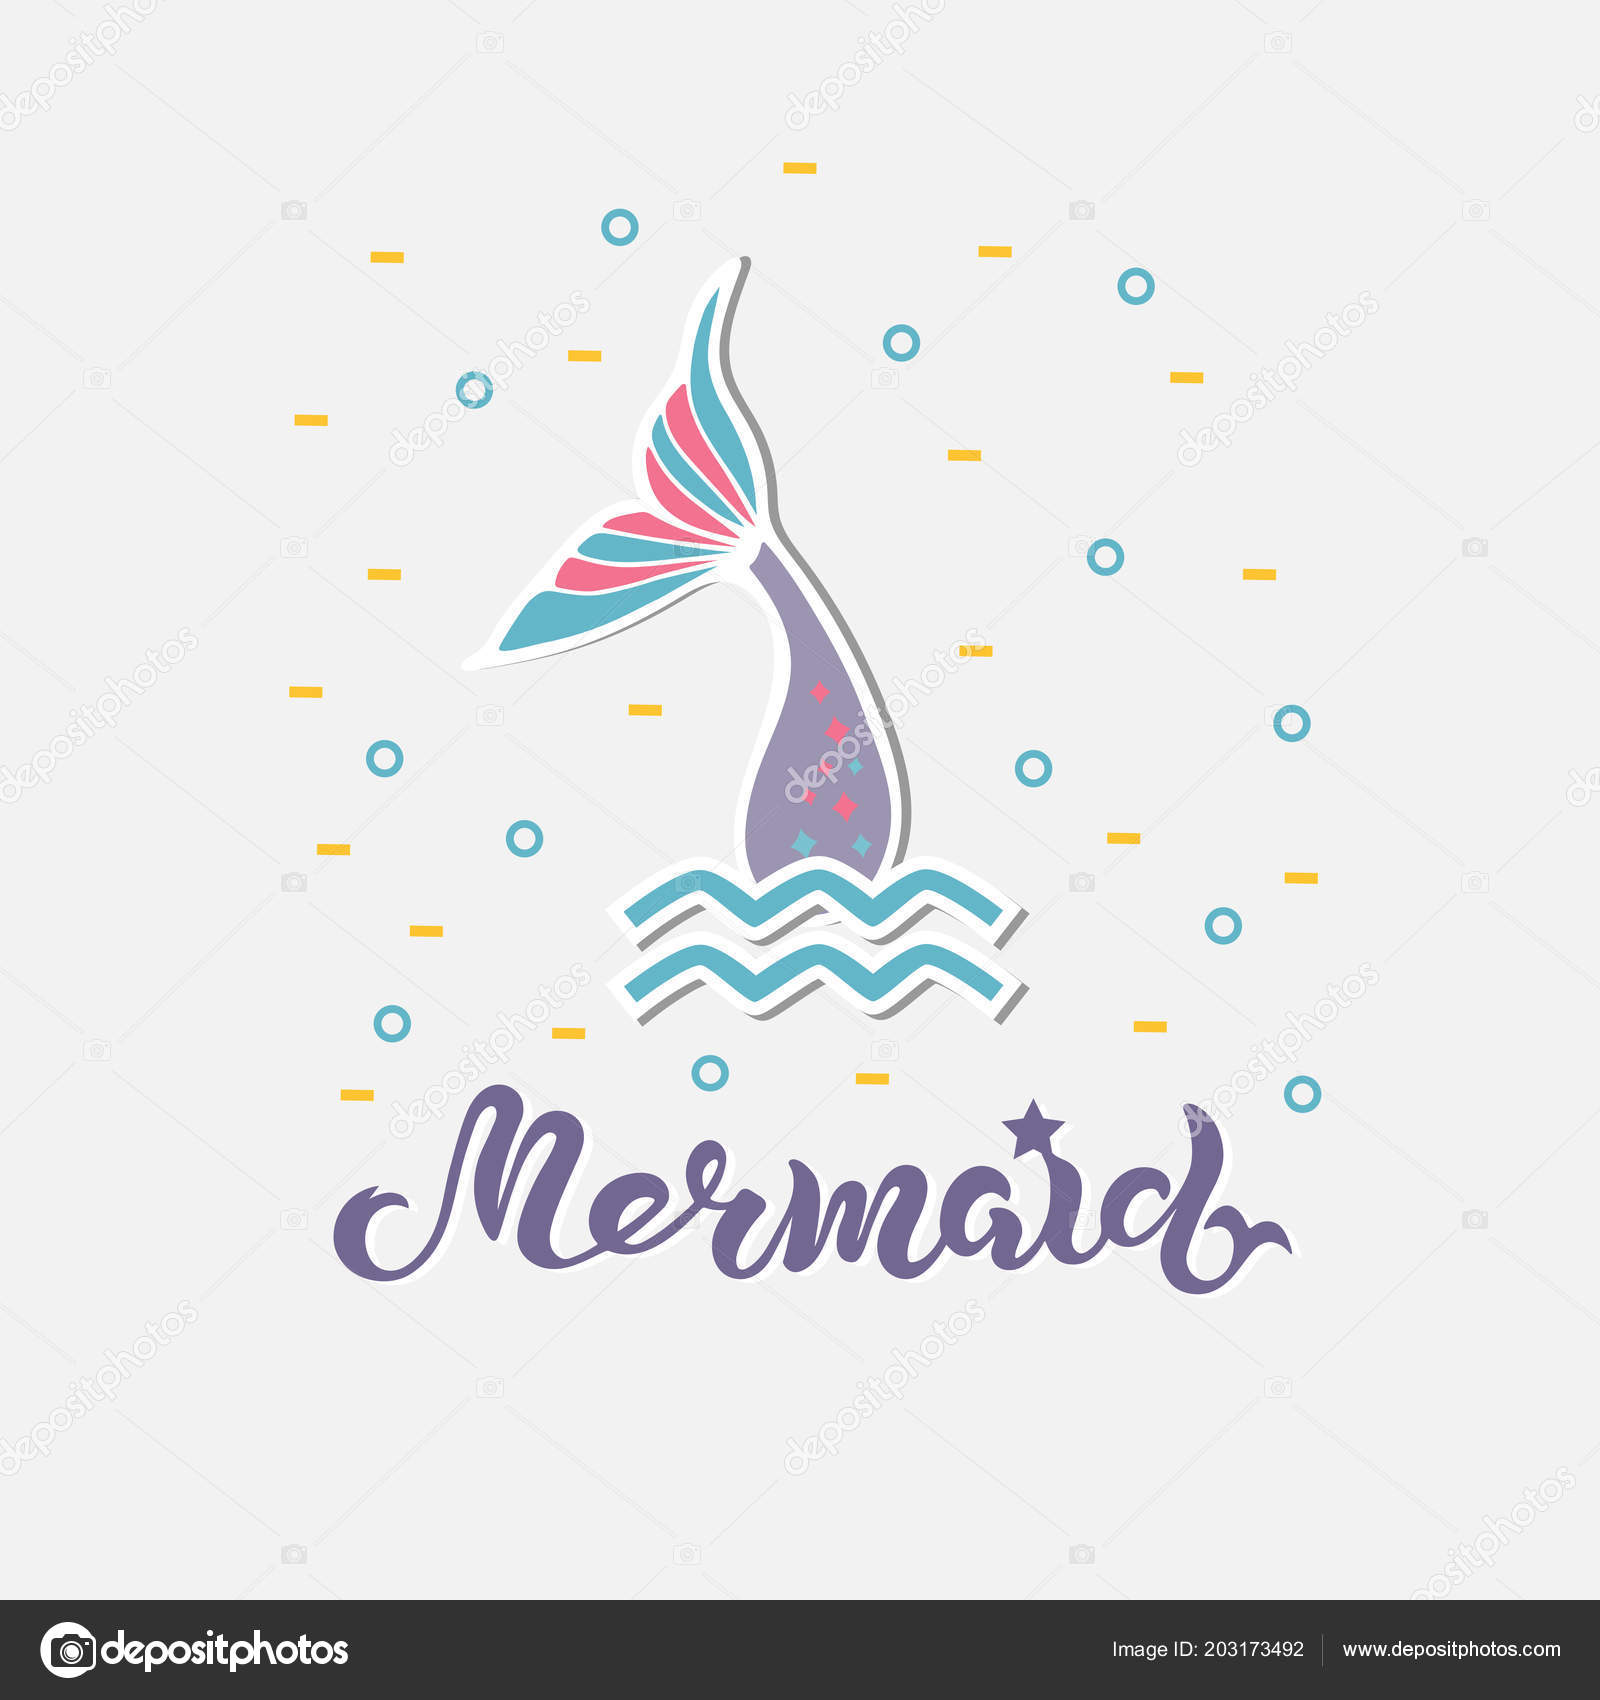 Vector illustration mermaid tail mermaid handwritten lettering logo vector illustration with mermaid tail mermaid handwritten lettering as logo patch sticker cake topperstemplate for mermaid style party invitation stopboris Gallery